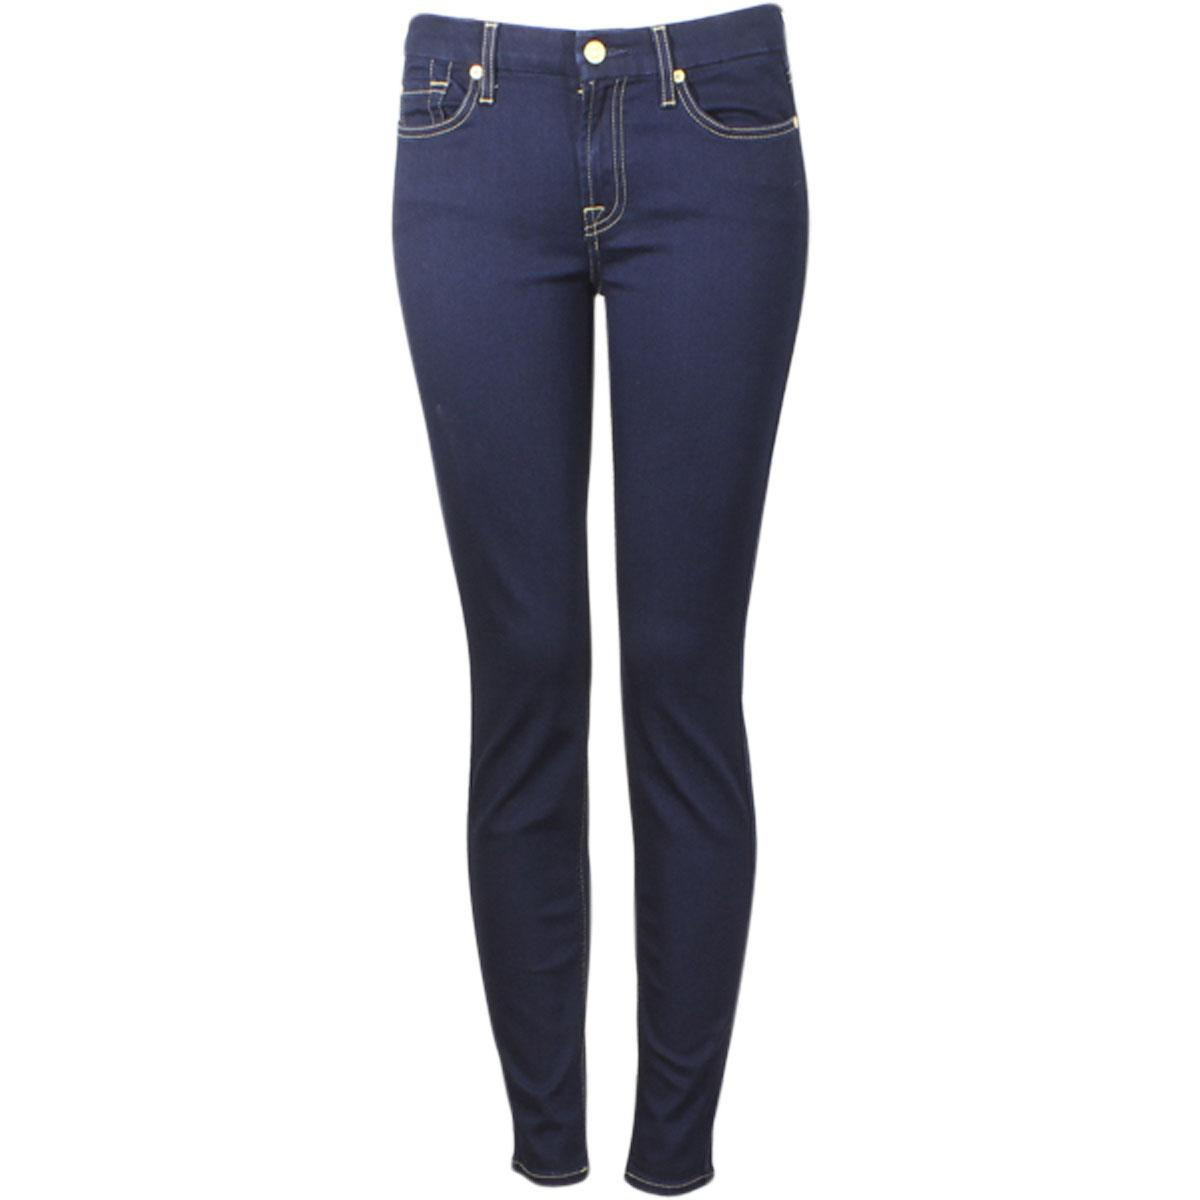 Image of 7 For All Mankind Women's (B)Air Denim The Skinny Jeans - Blue - 26 (1/2)